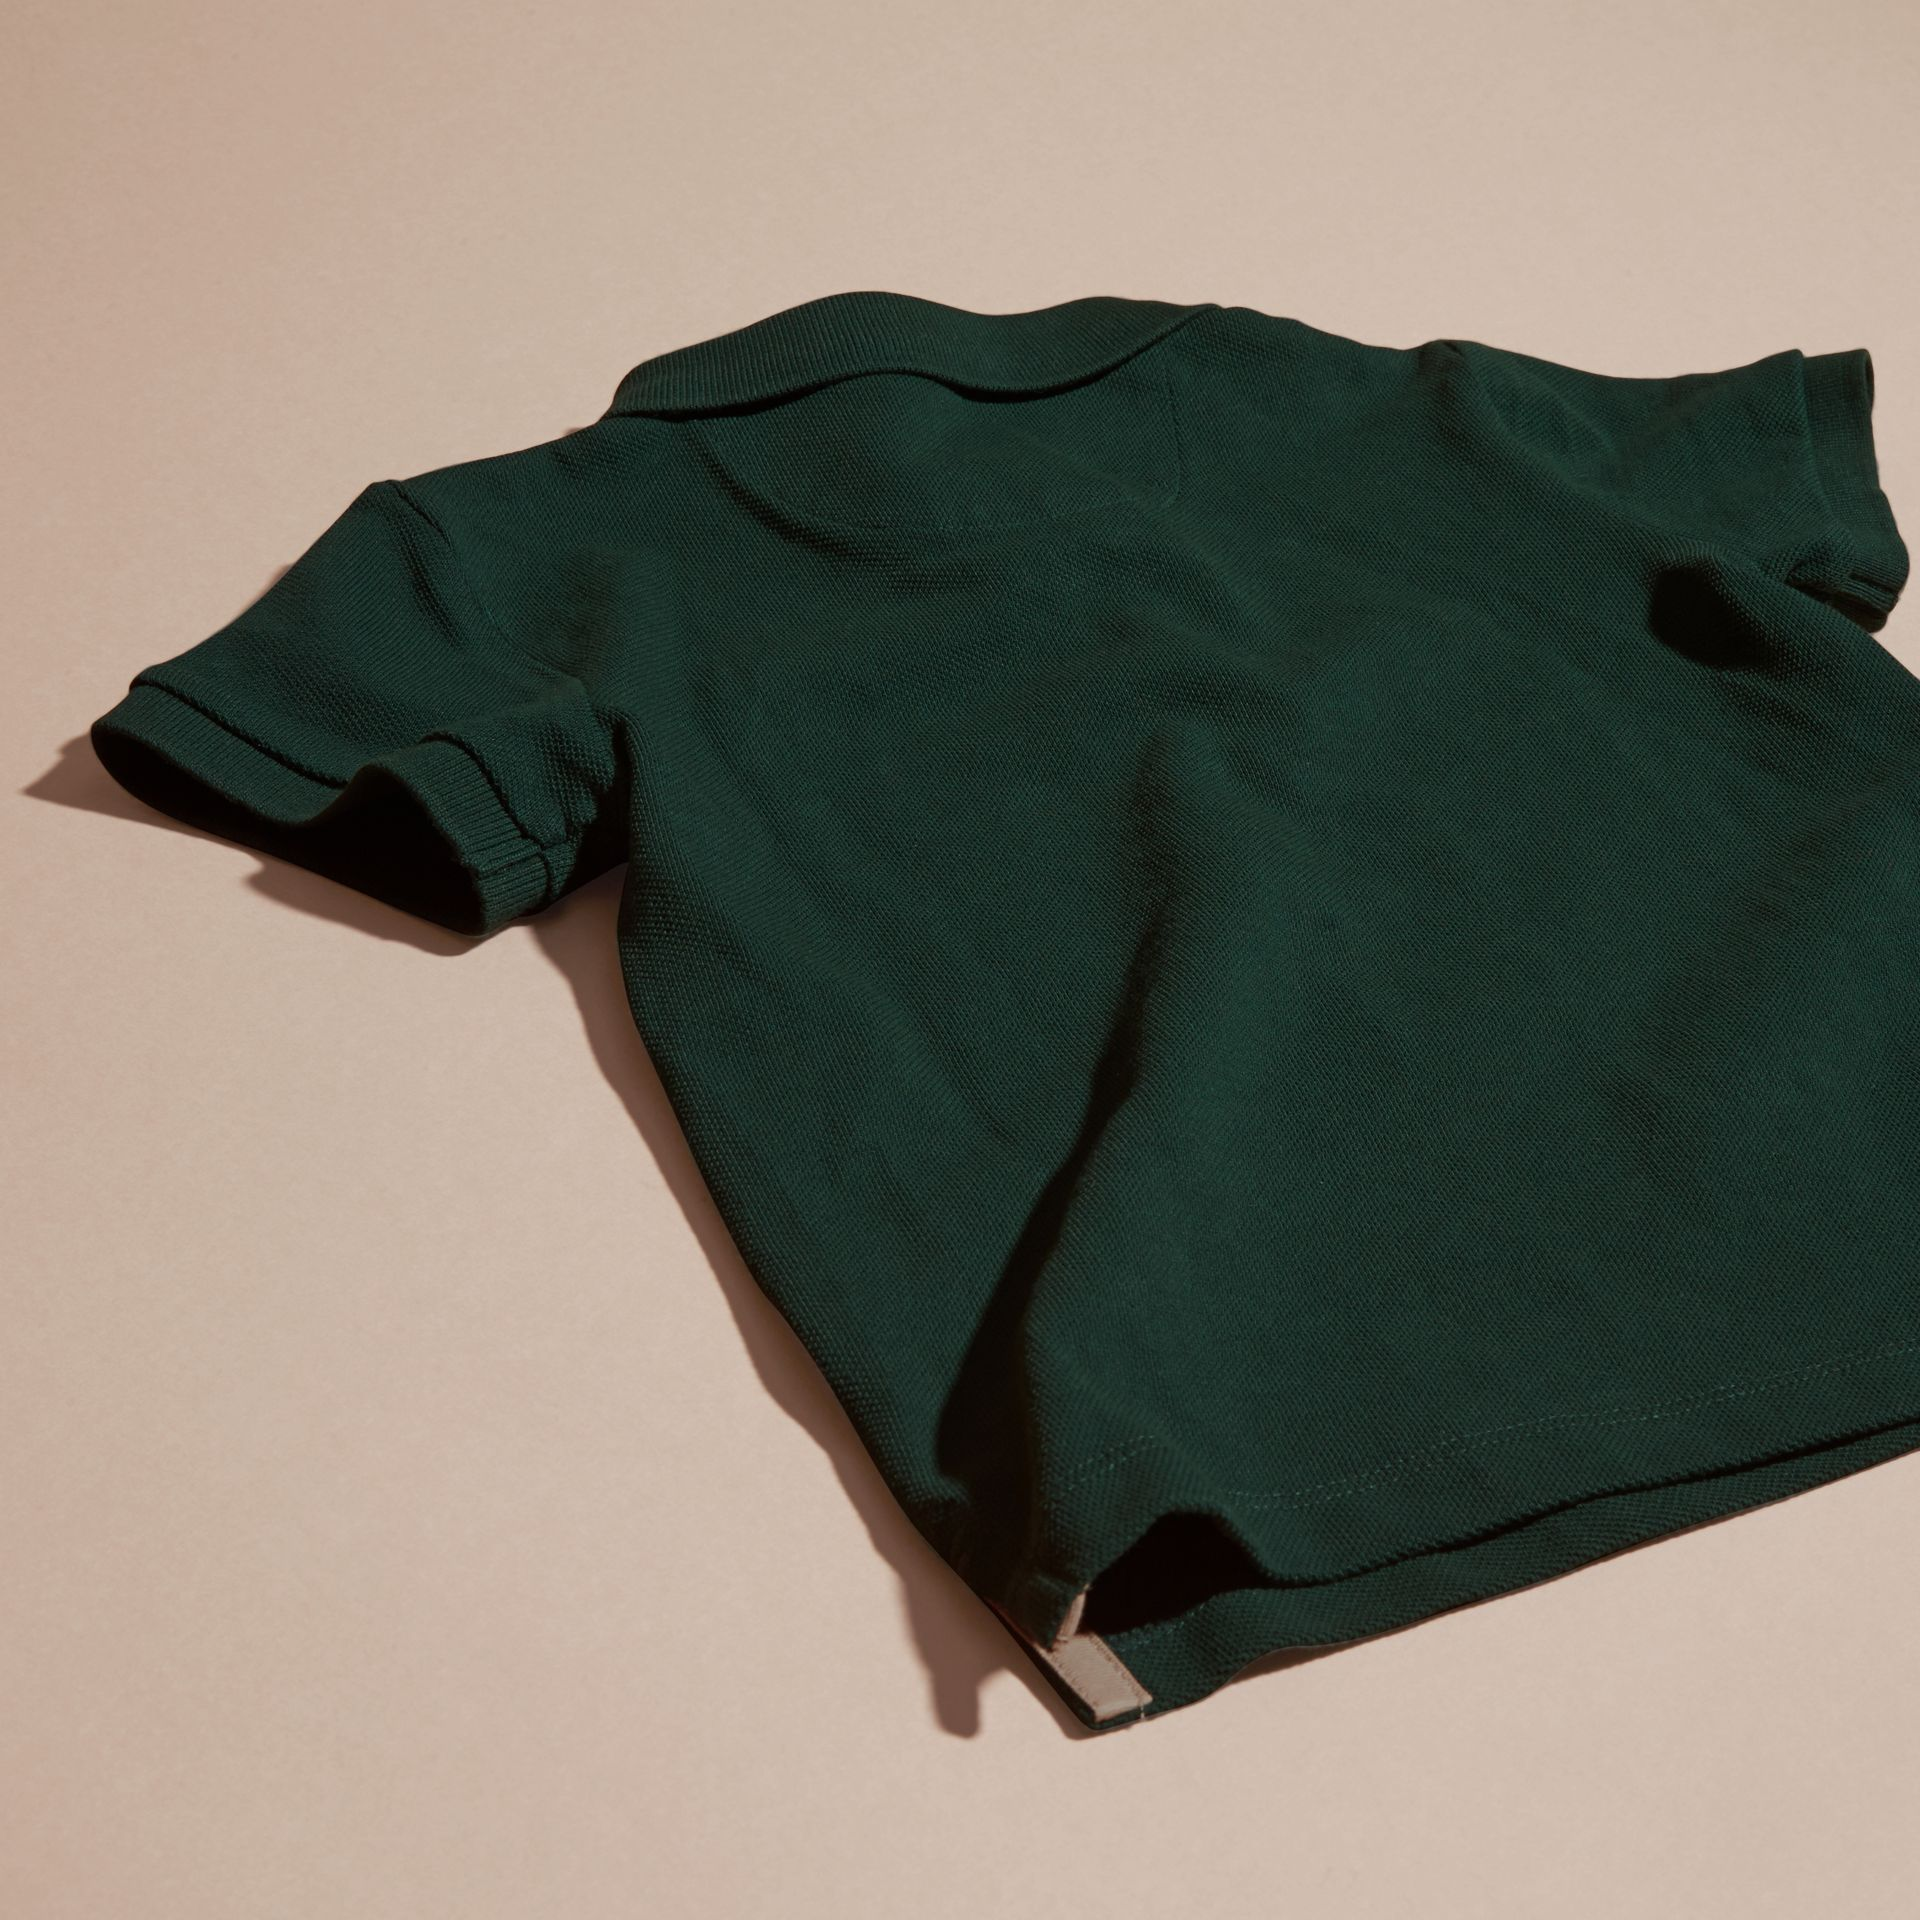 Racing green Check Placket Polo Shirt Racing Green - gallery image 4